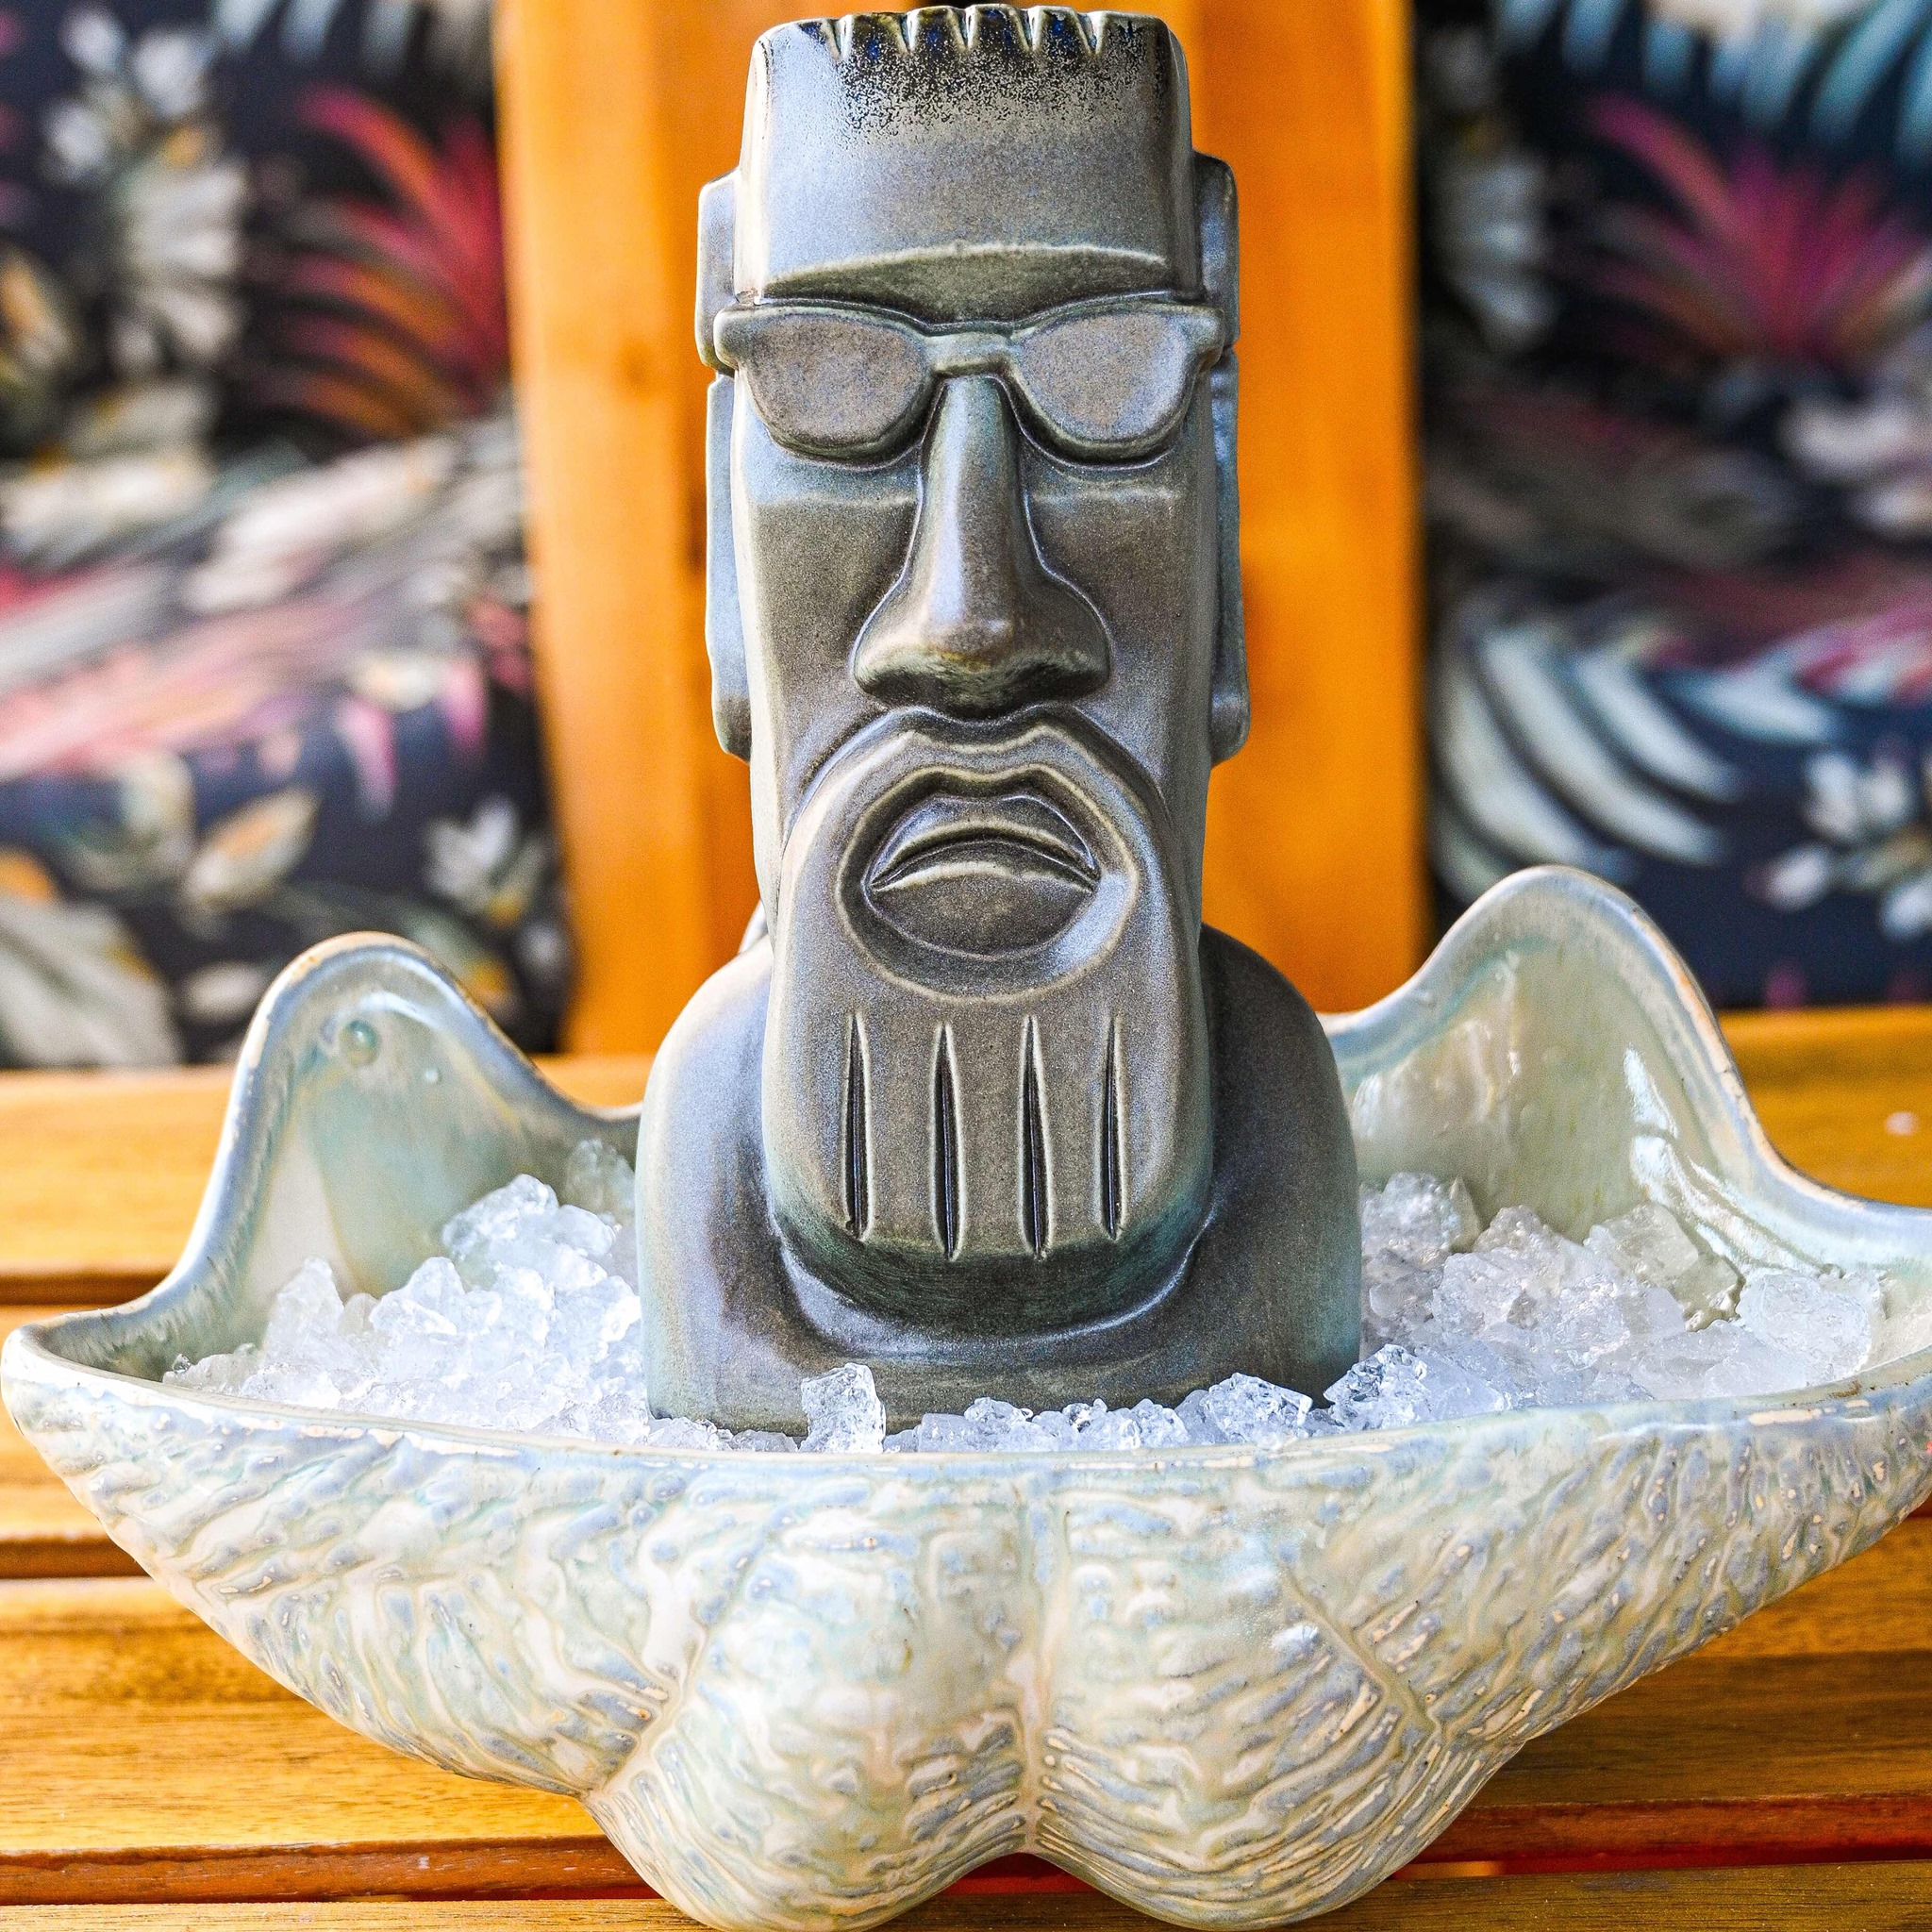 Burnt Ends Tiki Bar celebrates International Tiki Day with a weekend's worth of events